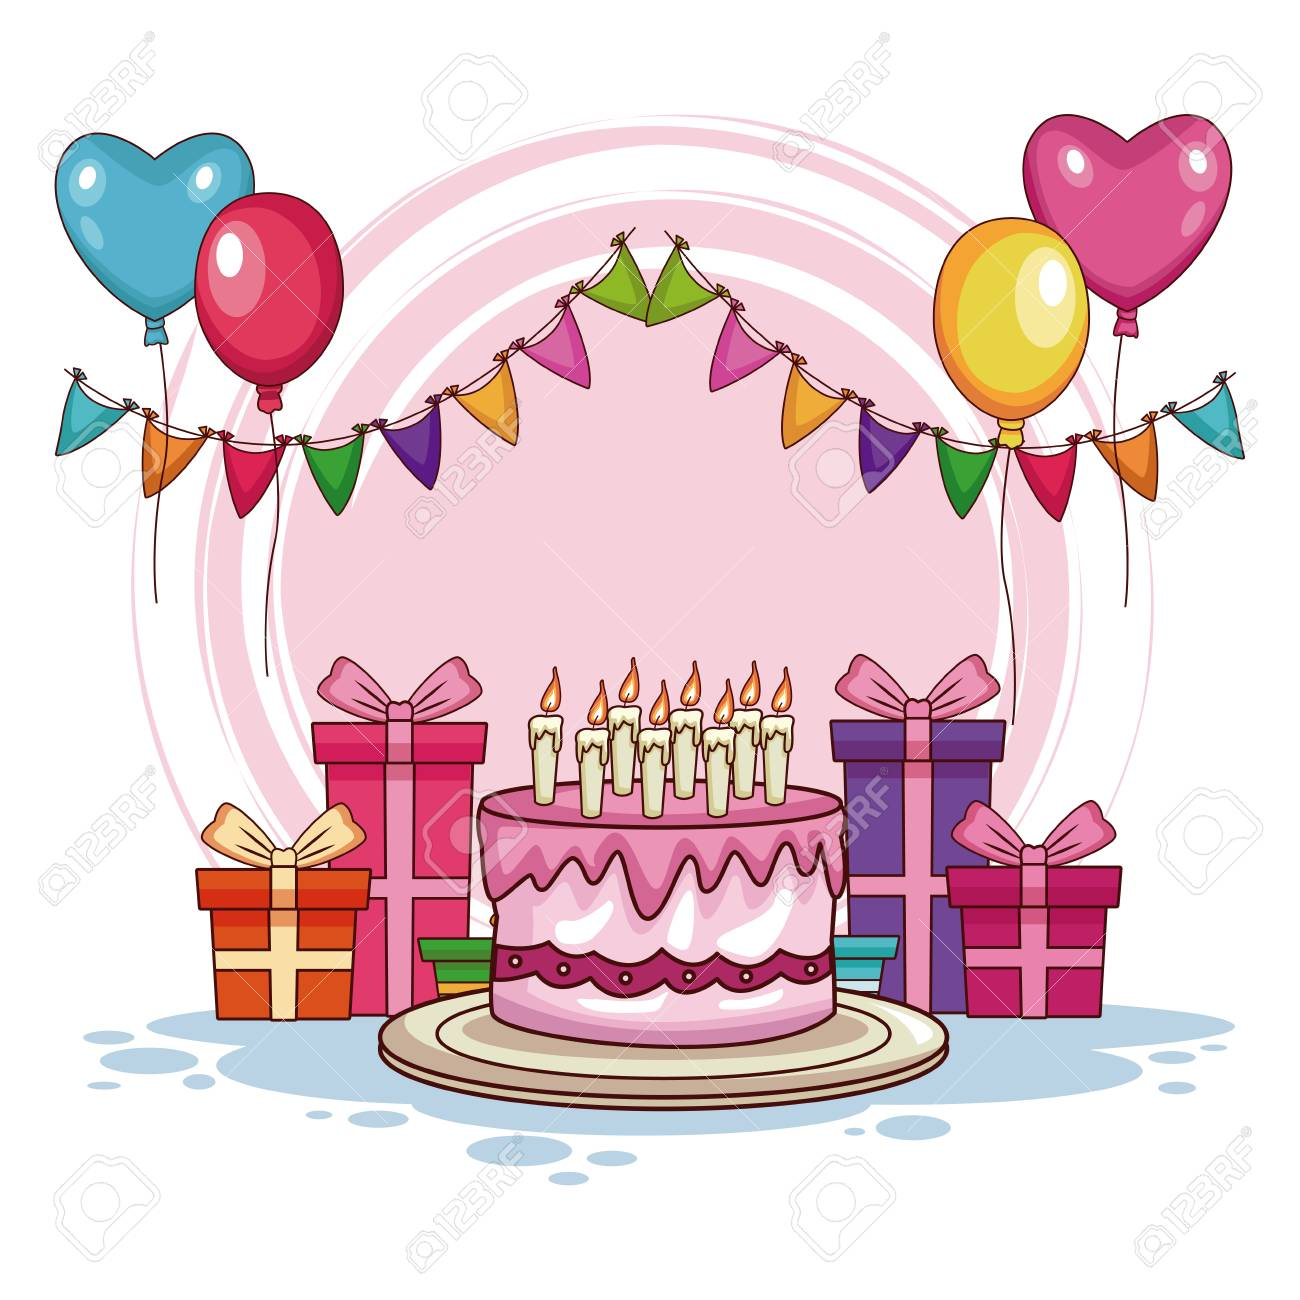 Birthday Gifts And Cake With Balloons Vector Illustration Graphic Design Stock